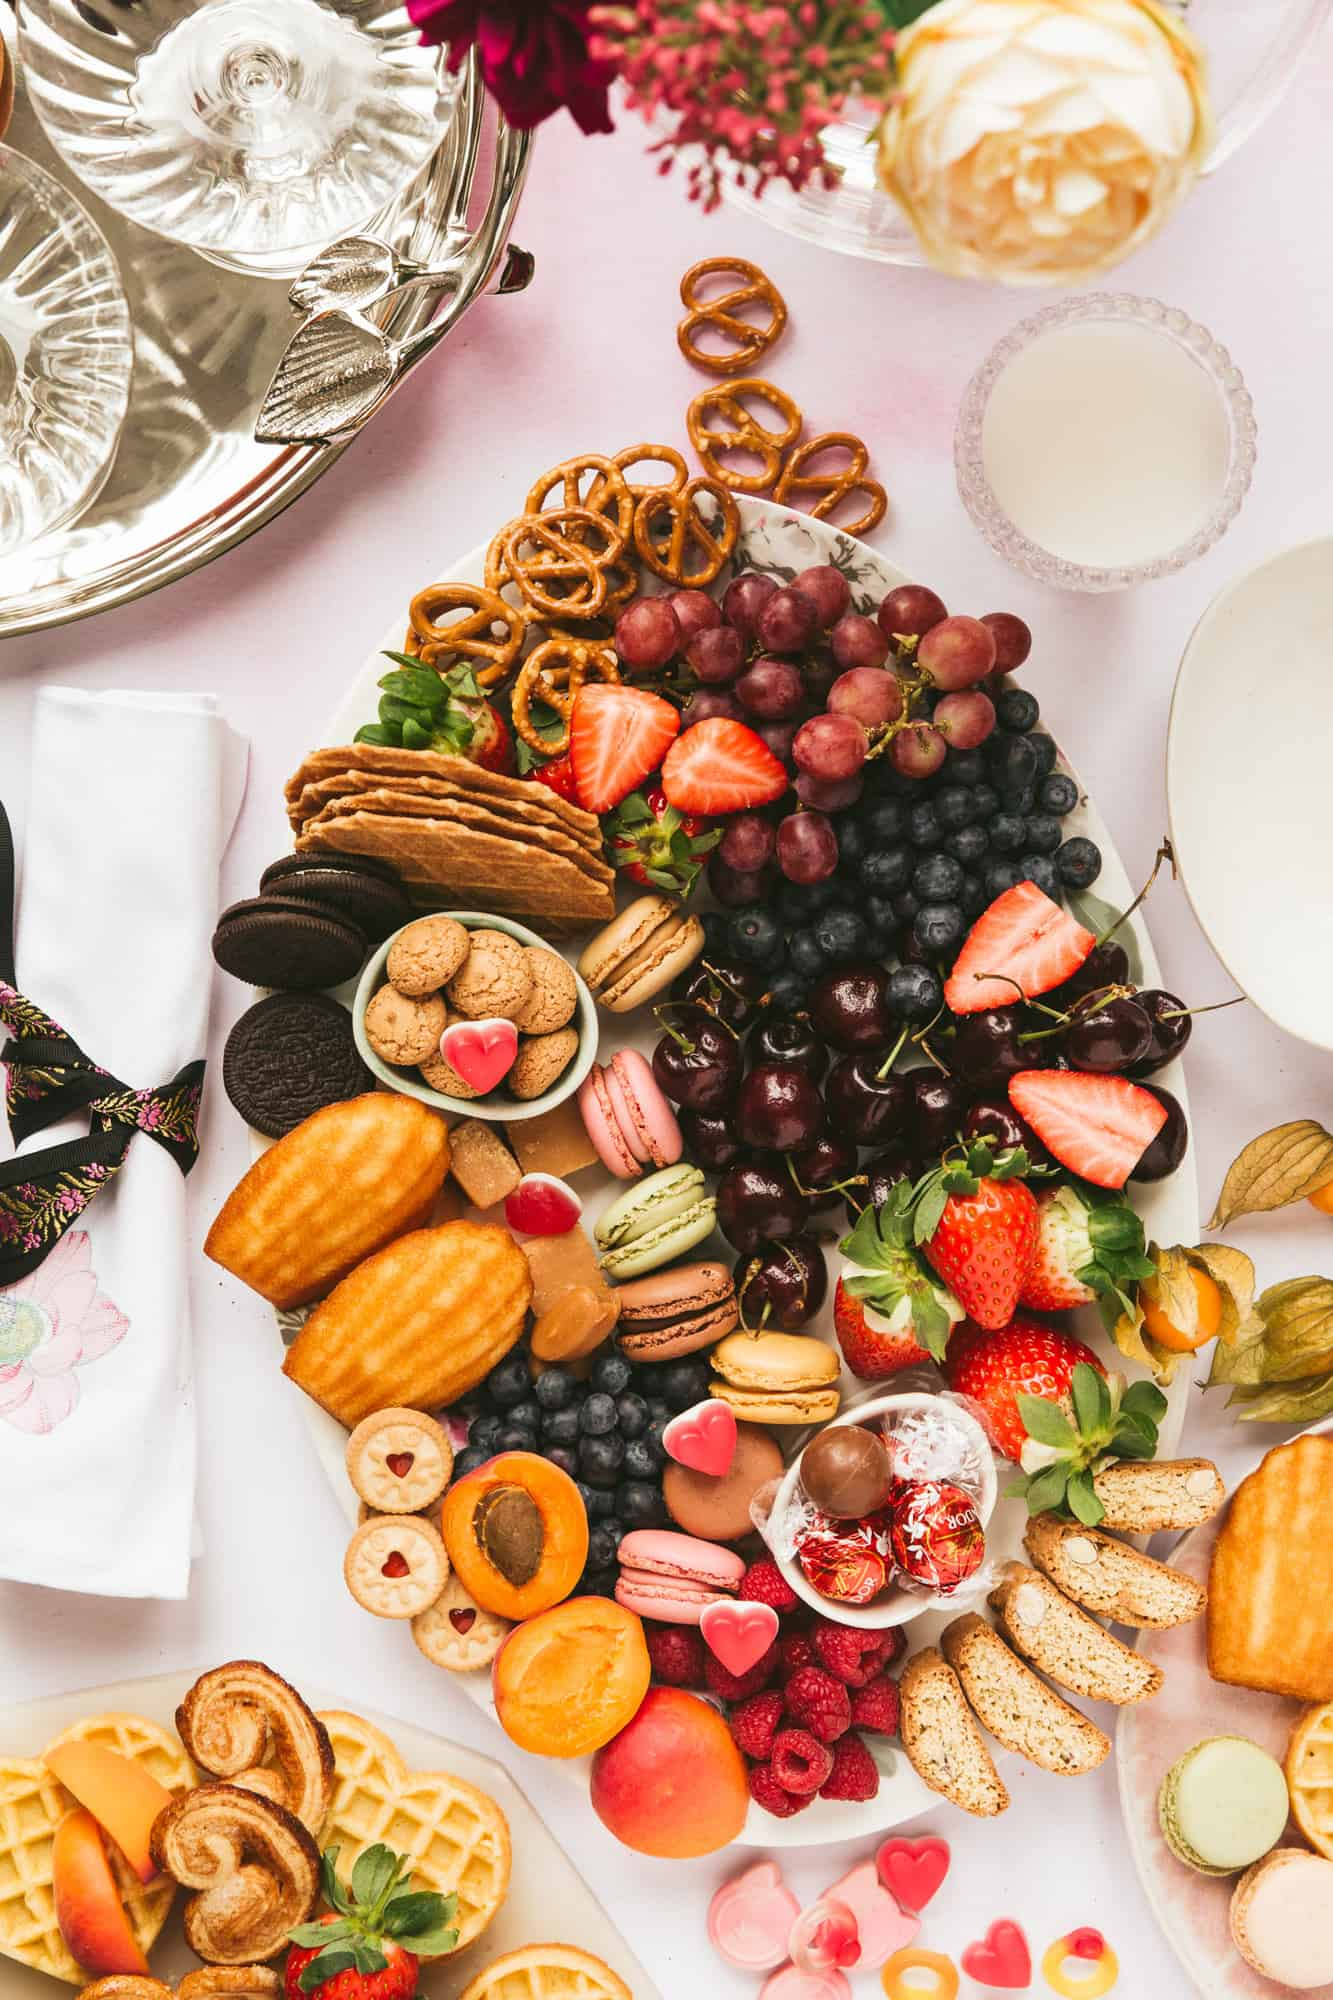 An oval platter covered with fruit and biscuits.